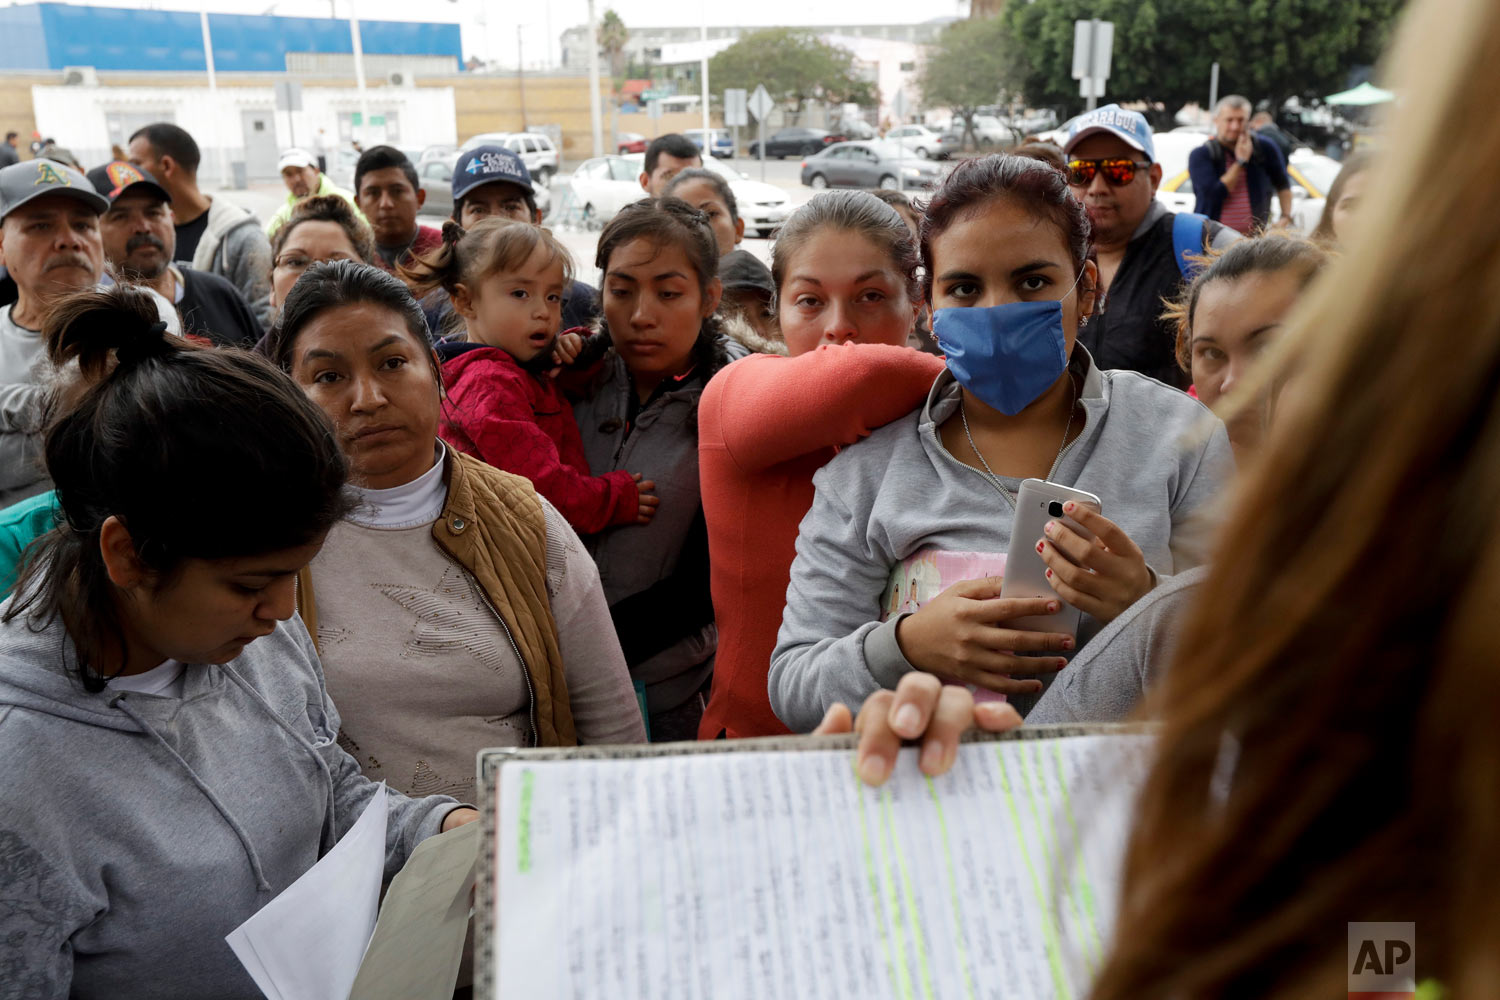 Women in Tijuana, Mexico, look on as numbers and names are called to from a list of asylum seekers. (AP Photo/Gregory Bull)